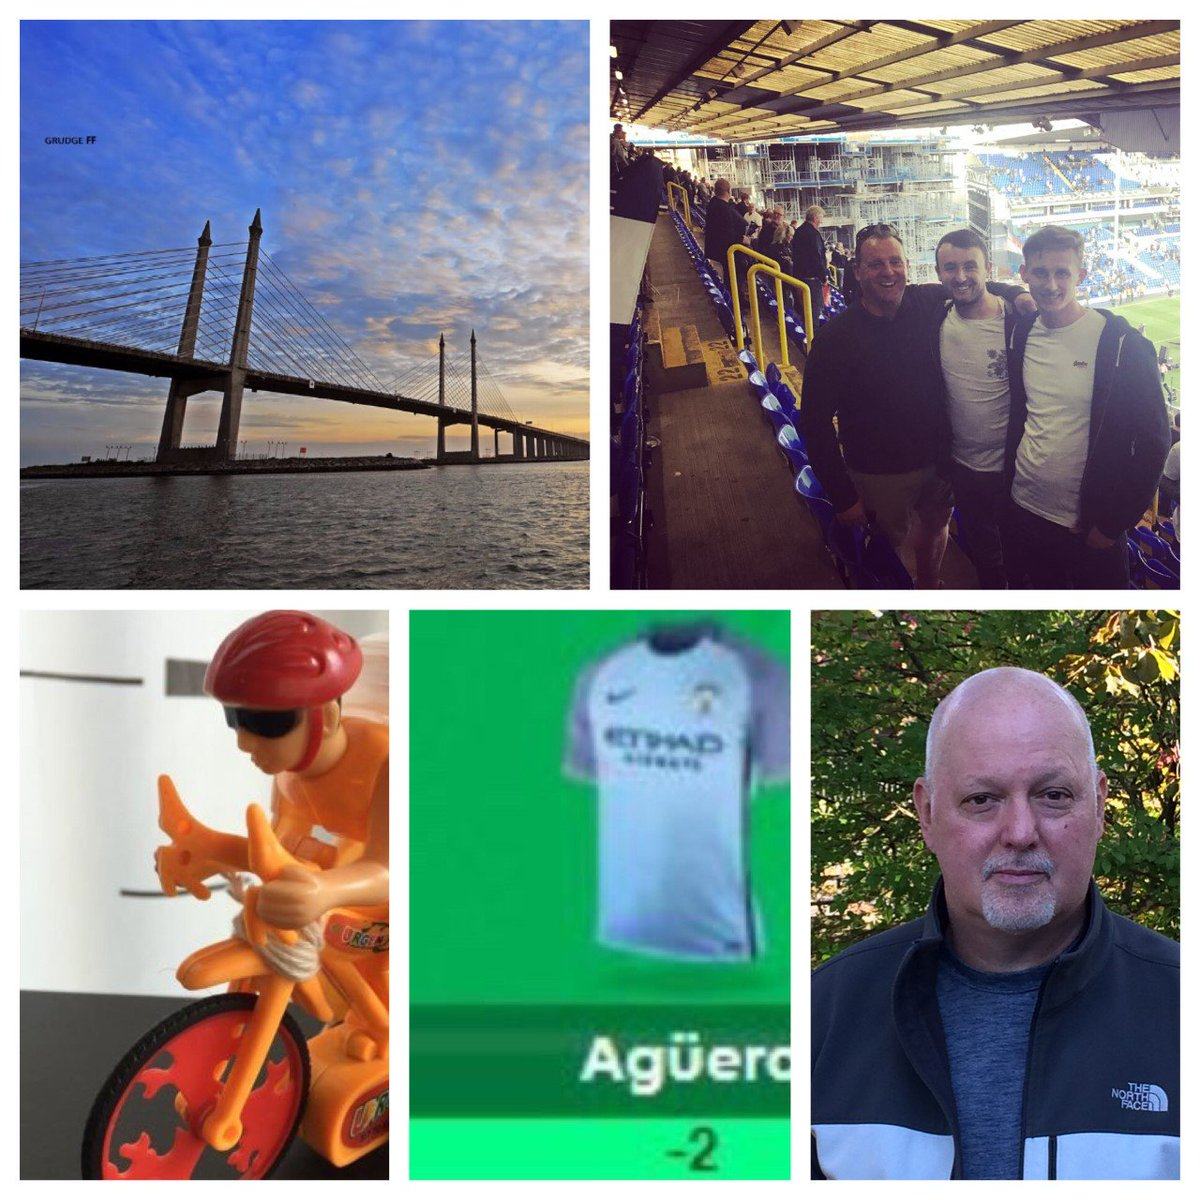 test Twitter Media - NEW POST - FPL #GW9 - FFGeek contributors show their teams @jwcrilley @fplword @MleichtD https://t.co/ltPZLr51yR #fpl #FantasyFootball https://t.co/HfMkOi97J9